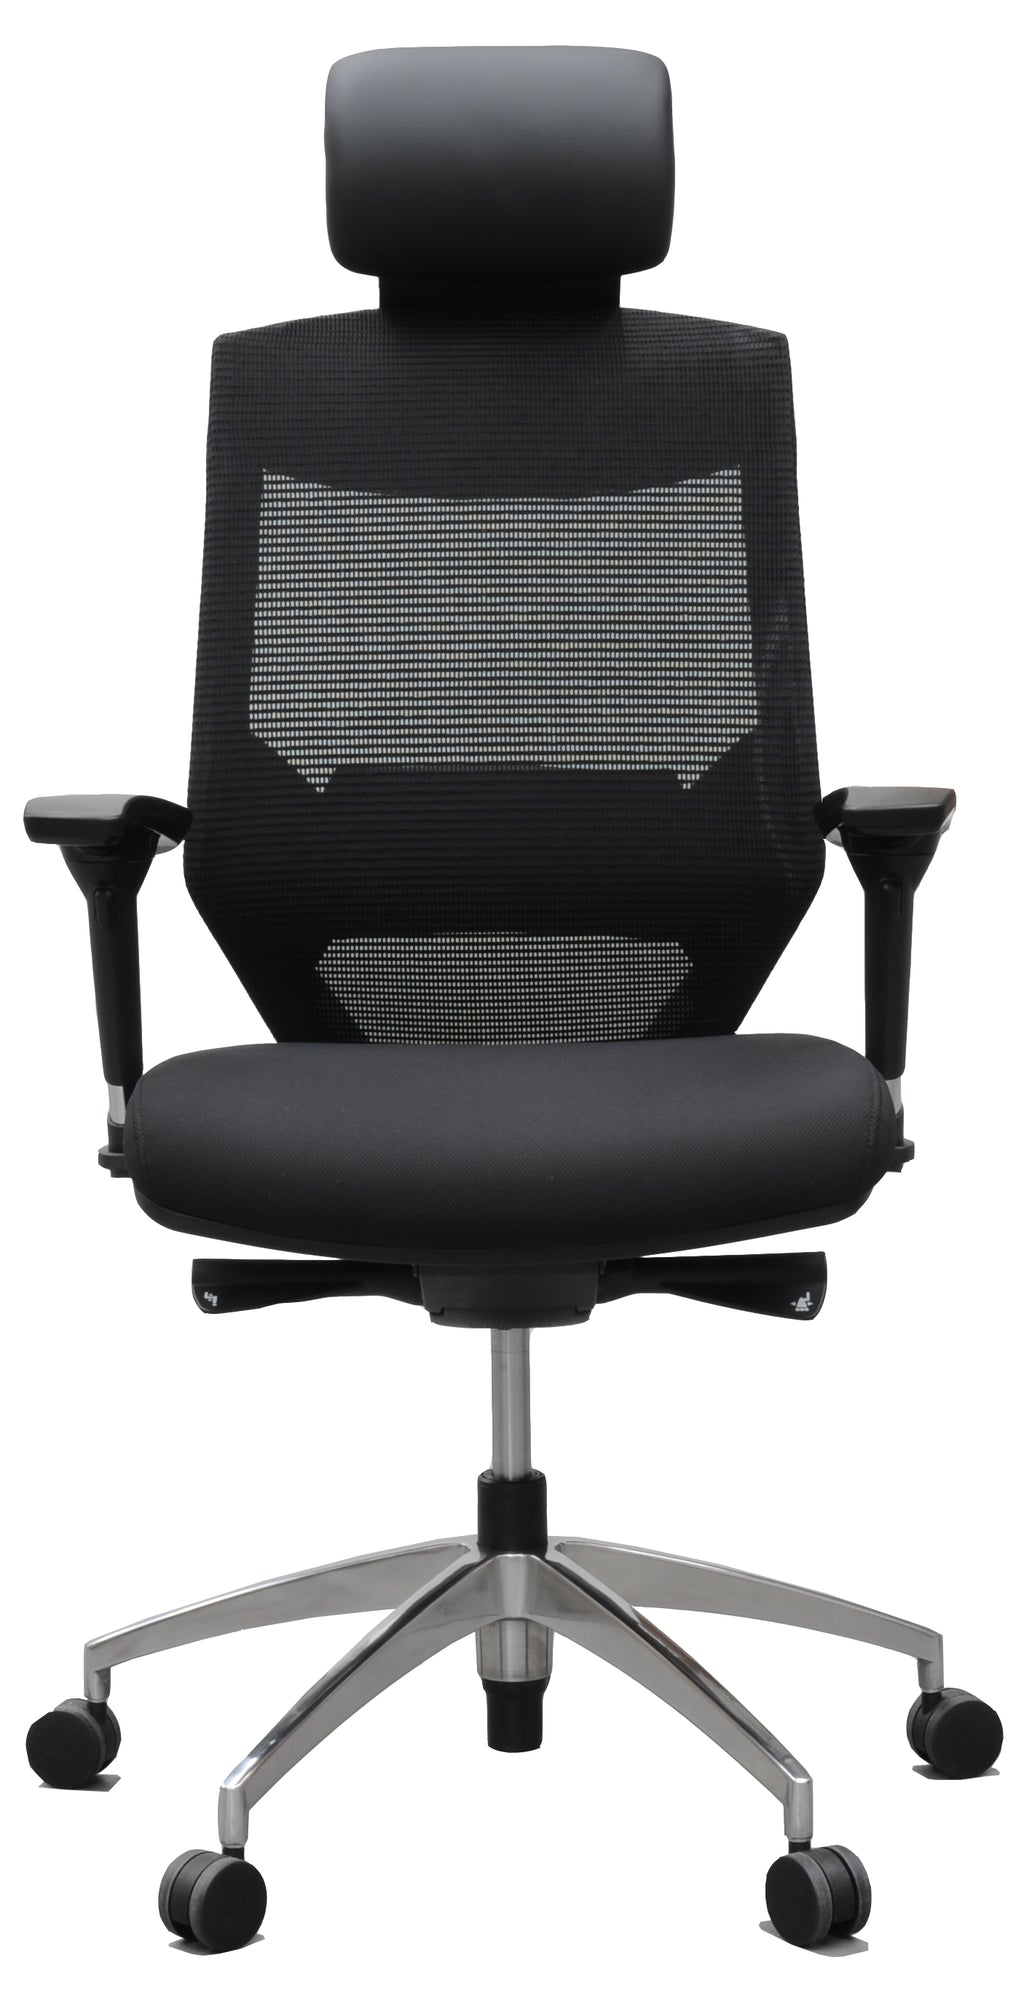 Vogue™ Ergonomic Mesh Back Chair - High Back Support - KiPP